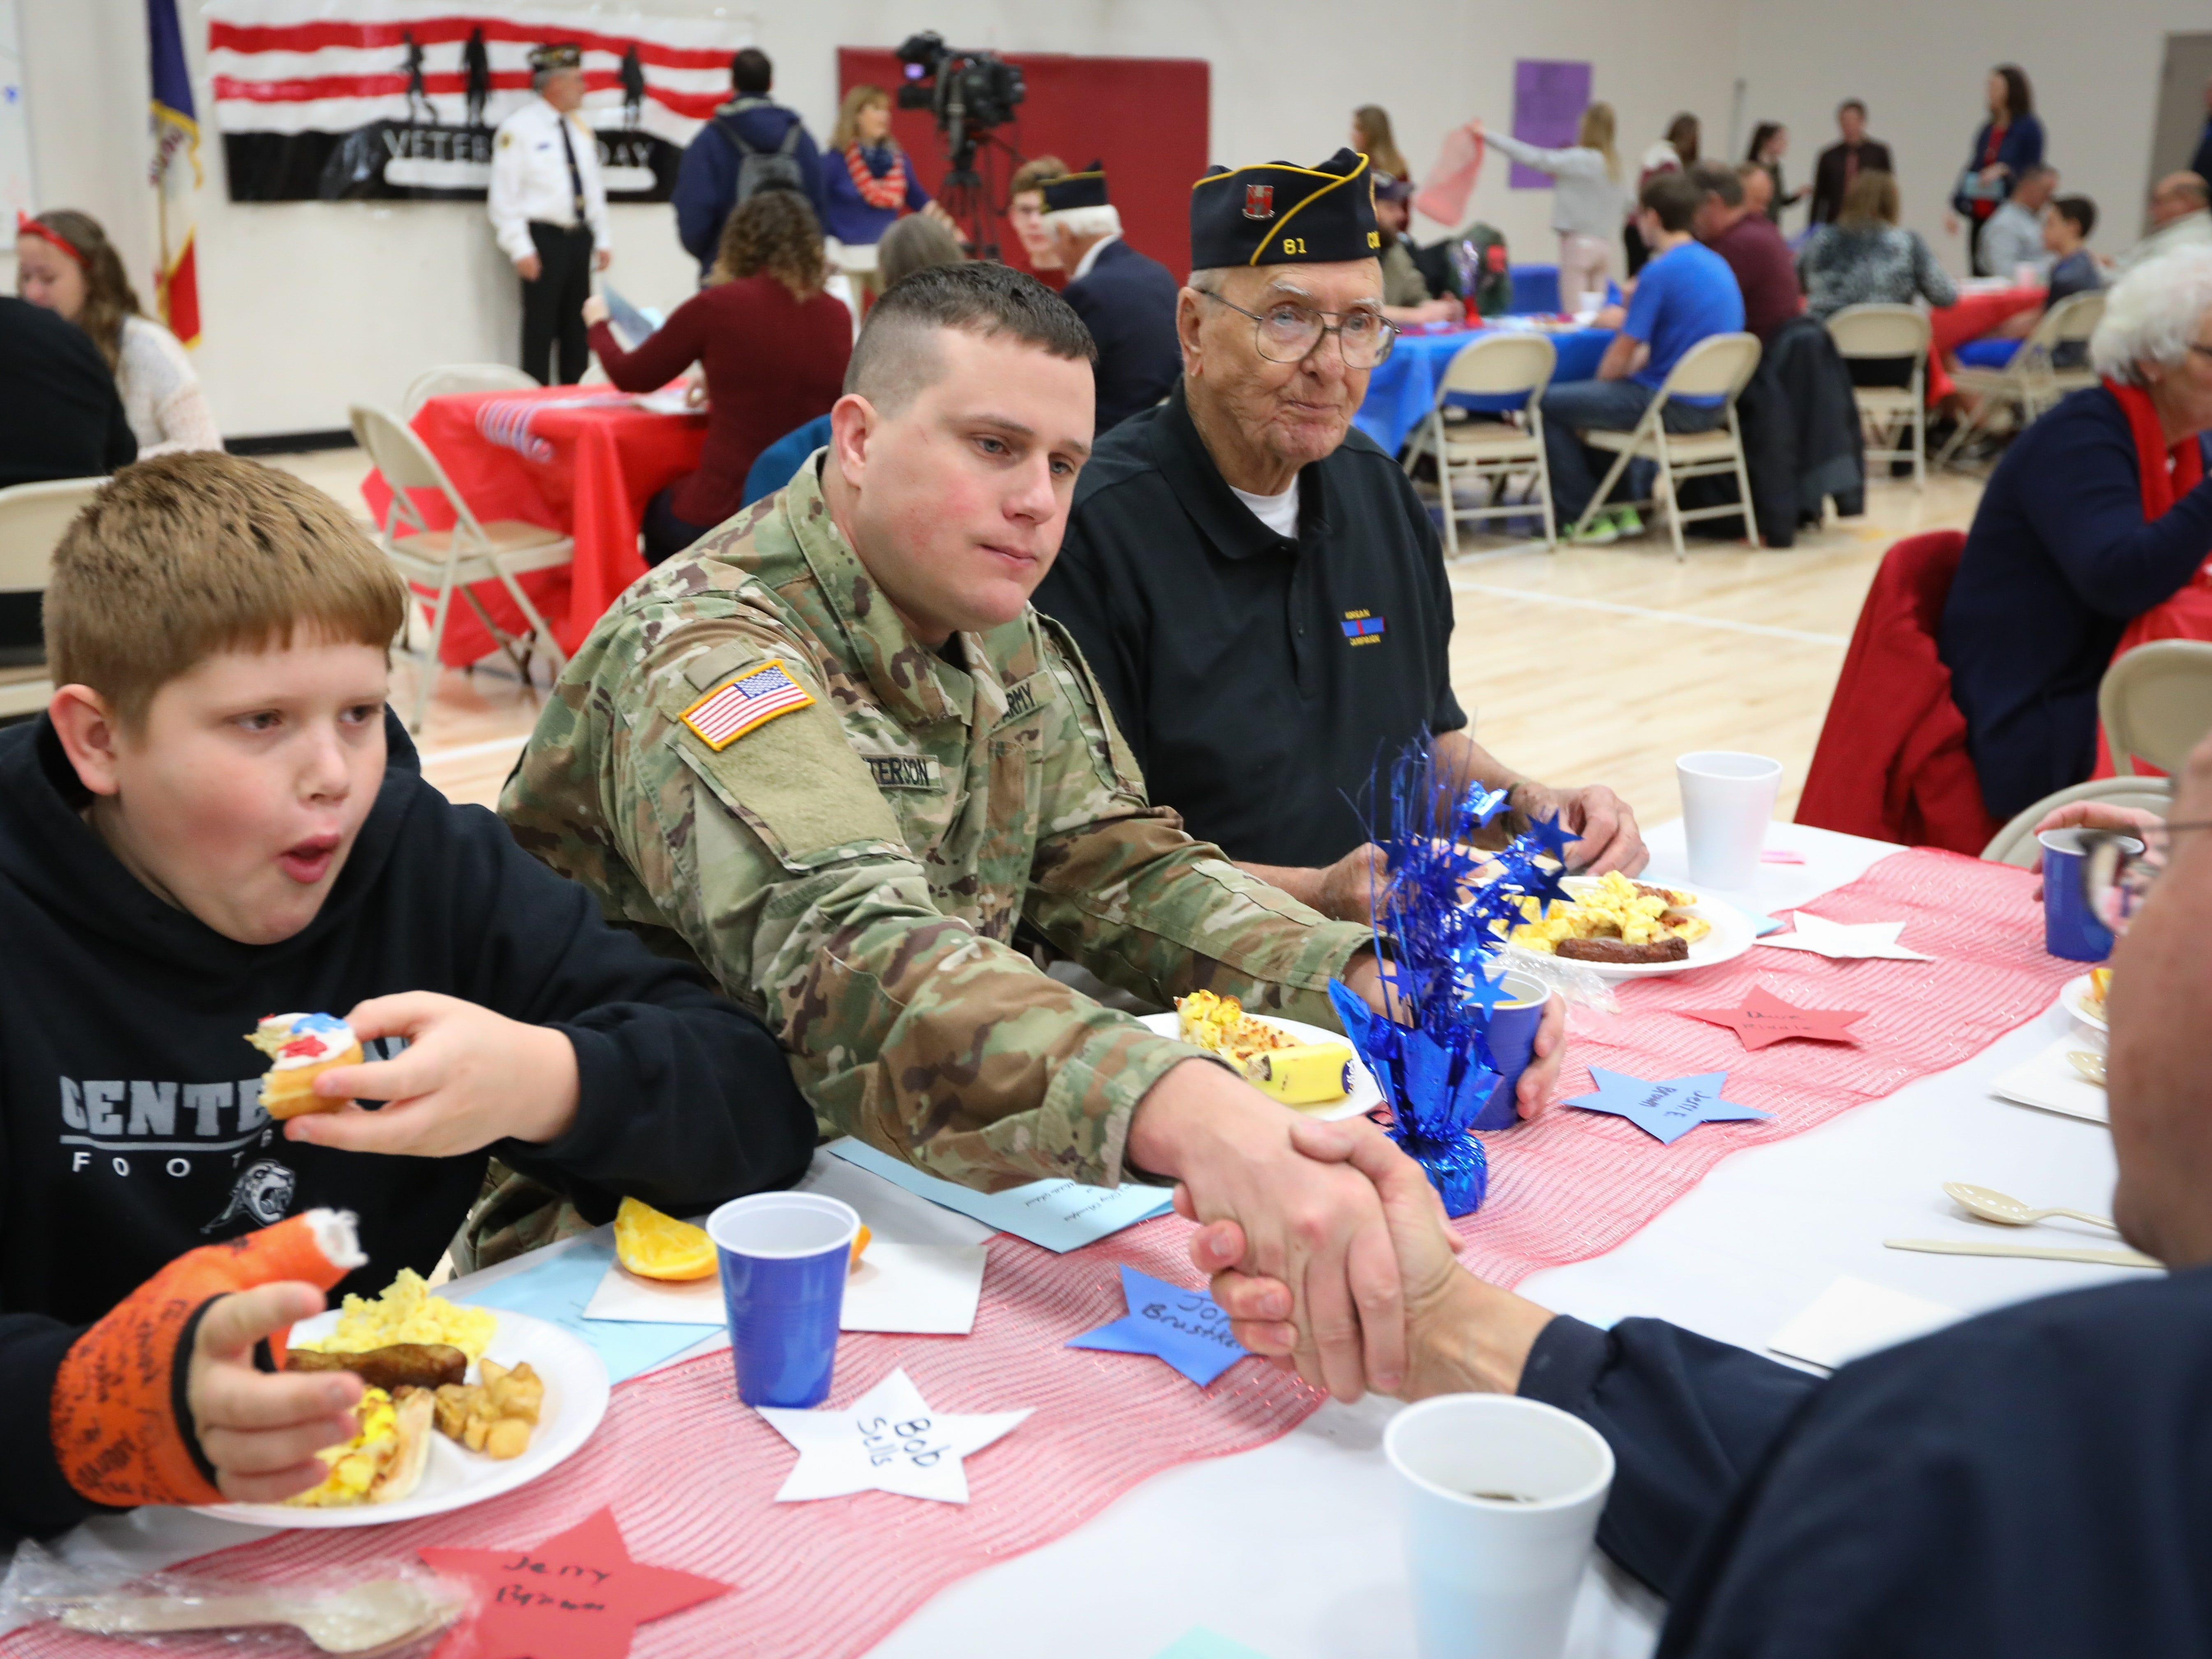 Kyle Patterson, center, an Army veteran, shakes hand with another veteran during a Veterans Day Breakfast at Northview Middle School on Wednesday, Nov. 14, 2018 in Ankeny, Iowa. Middle school students hosted the veterans to share their gratitude before an assembly.